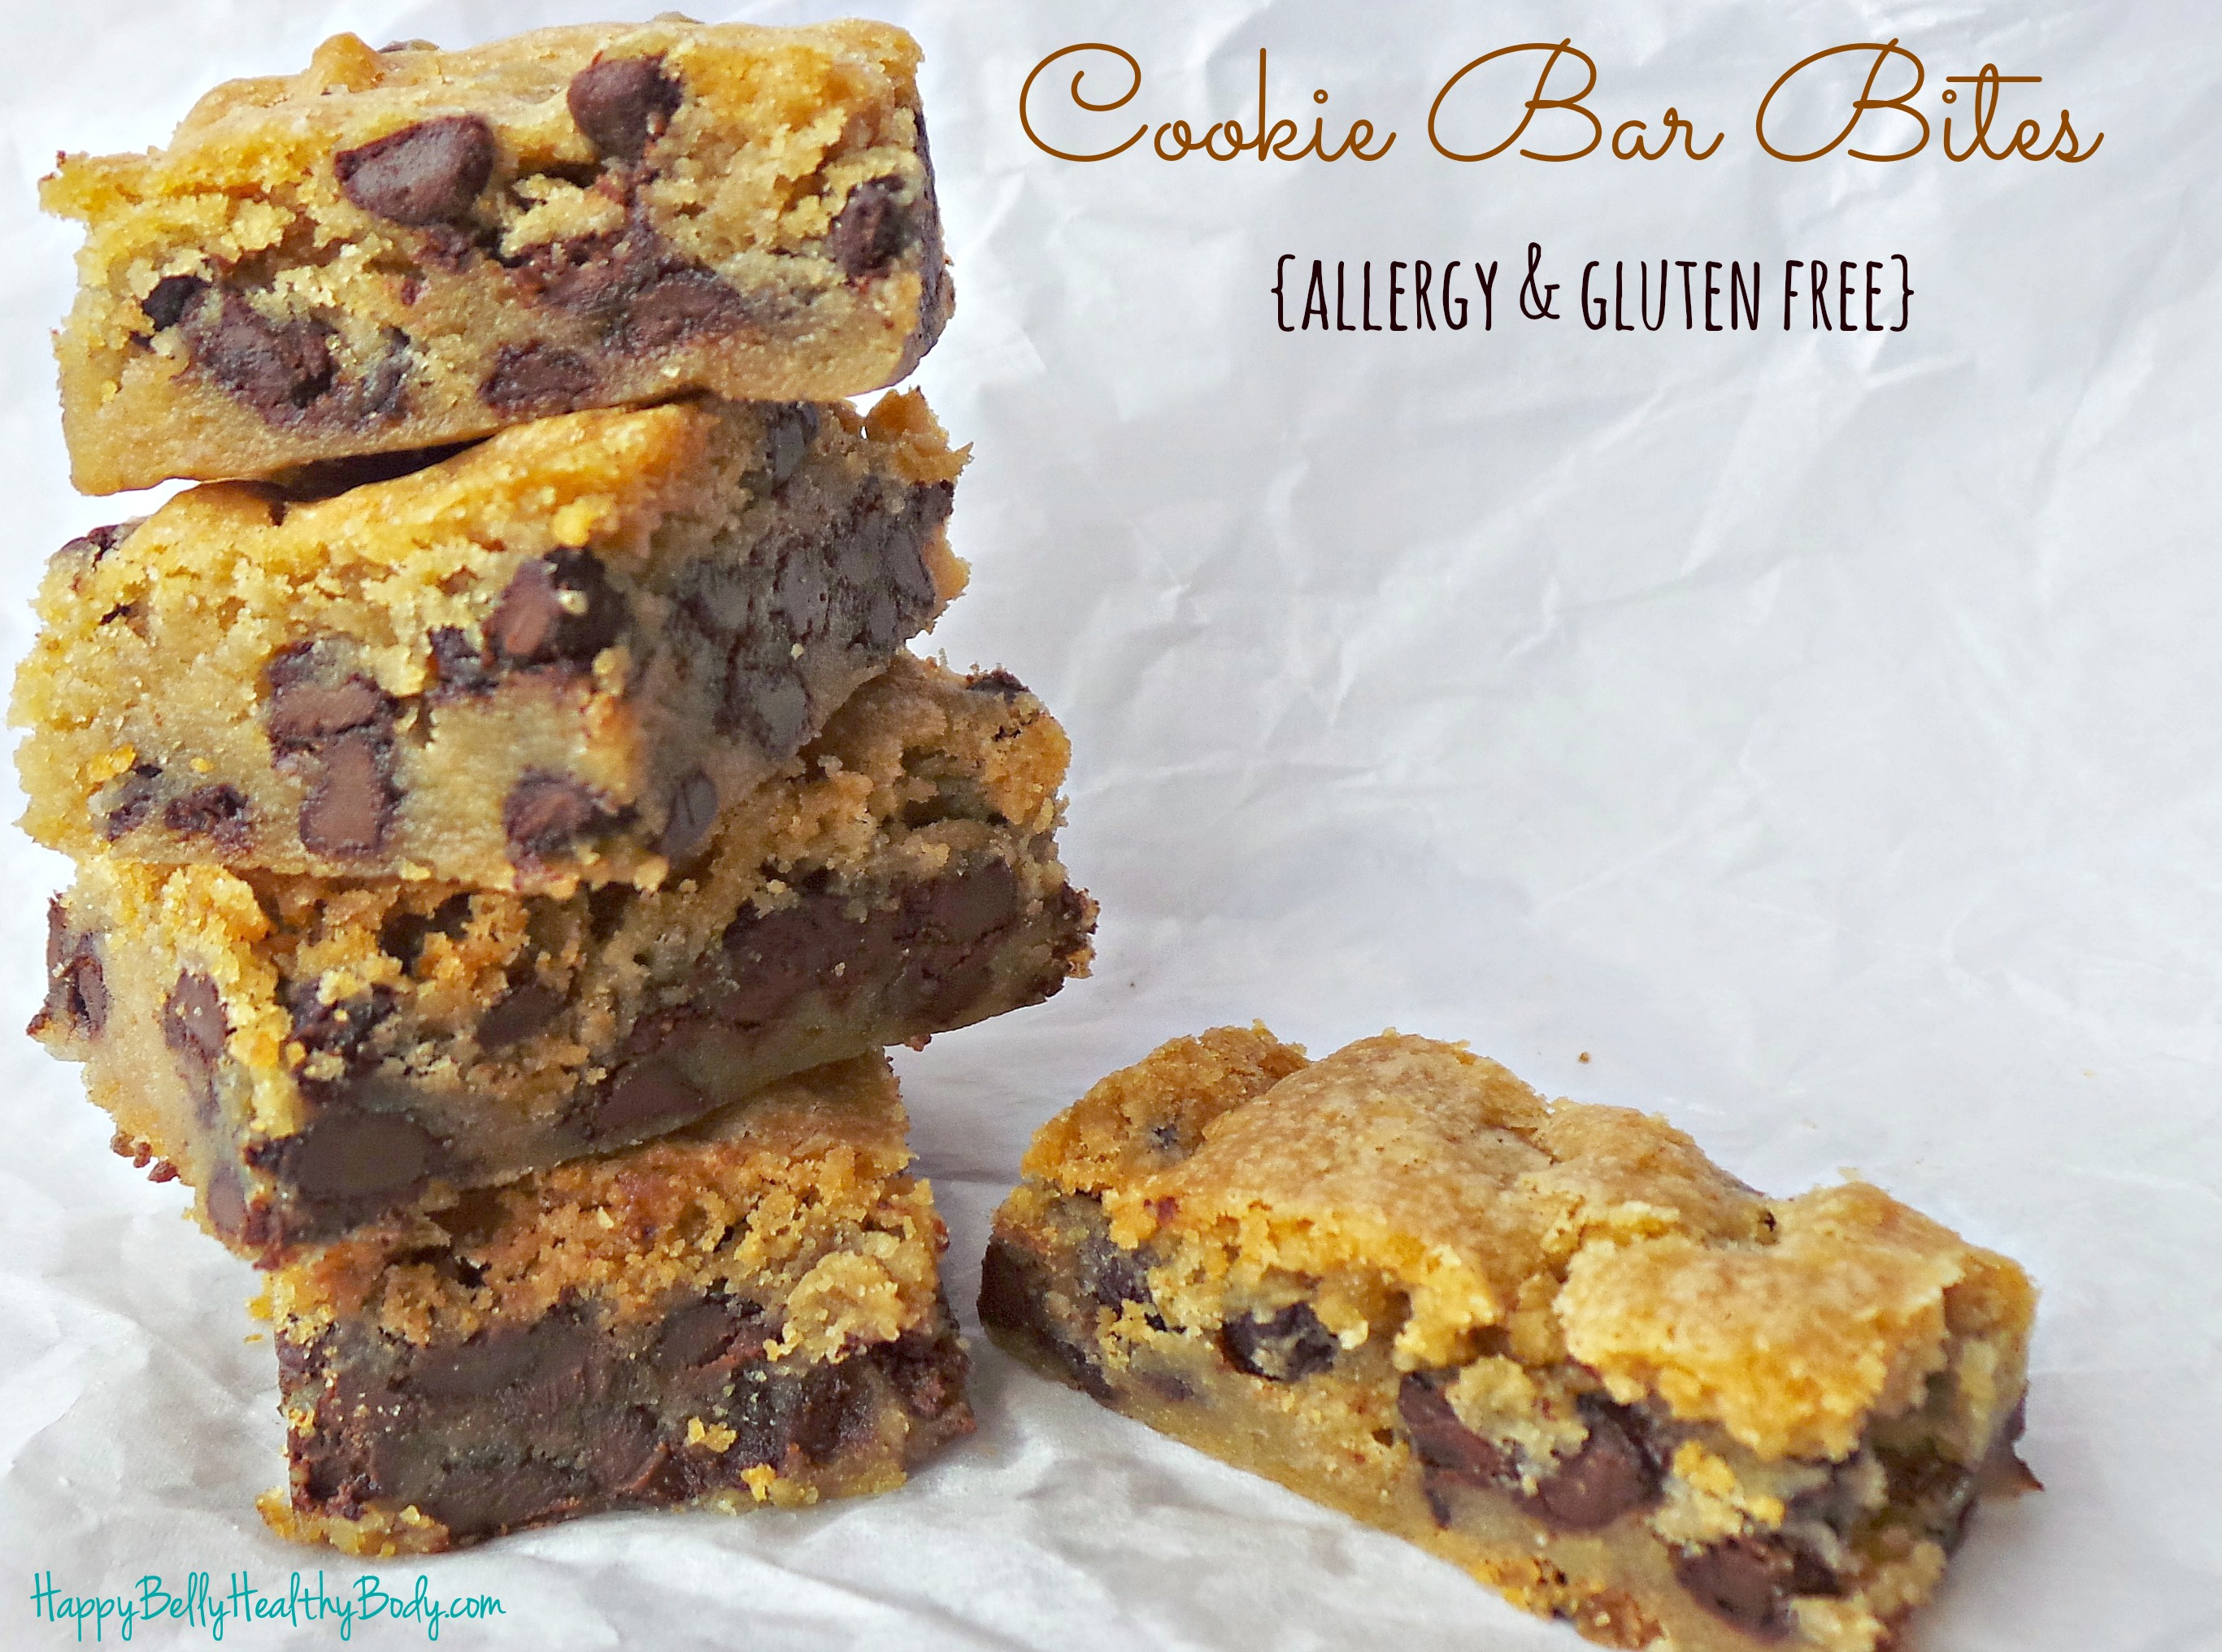 Allergy safe and gluten free, these bars leave you satisfied, never missing their original counterpart.